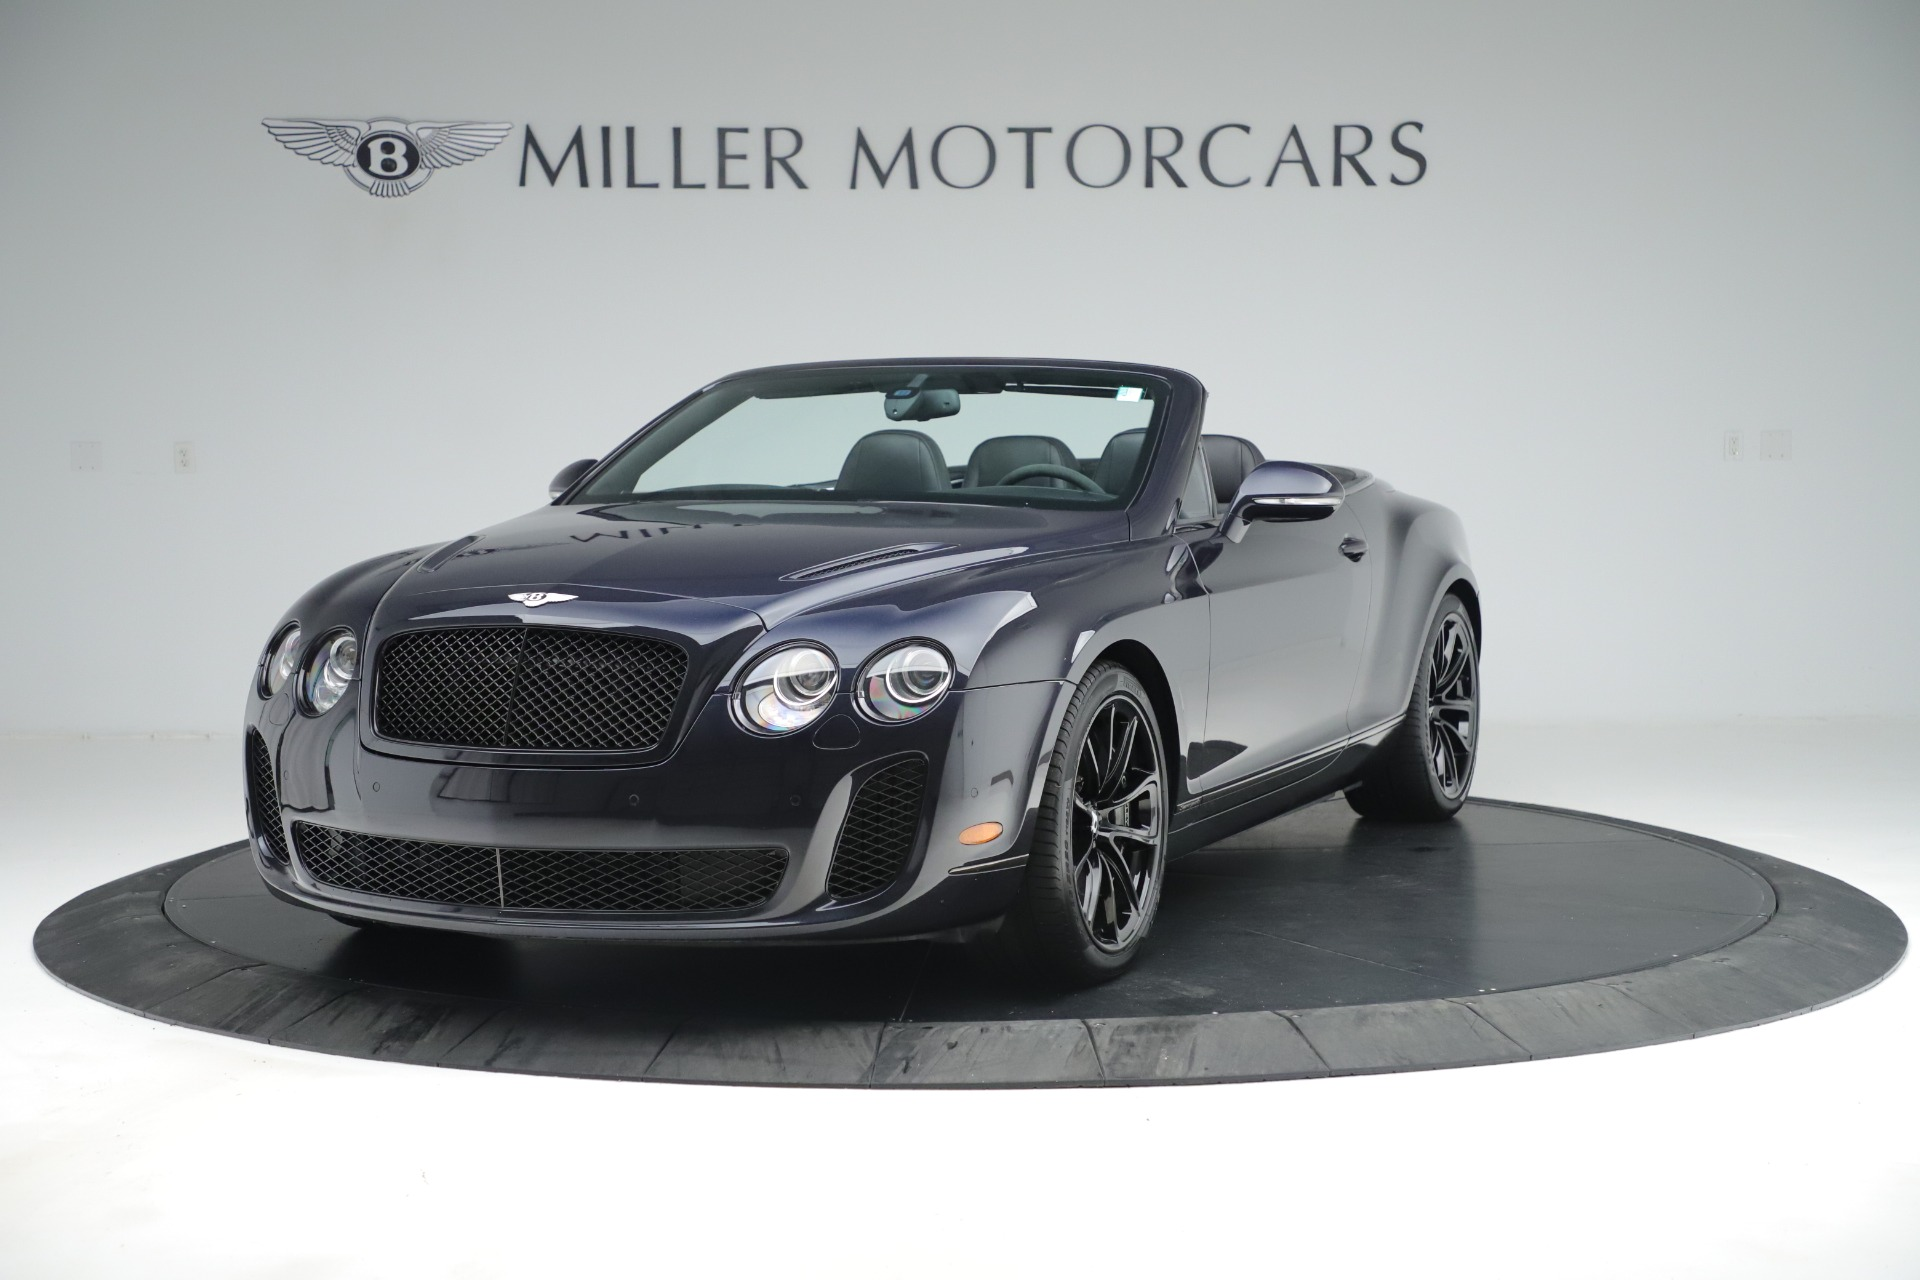 Used 2012 Bentley Continental GT Supersports for sale Sold at Aston Martin of Greenwich in Greenwich CT 06830 1